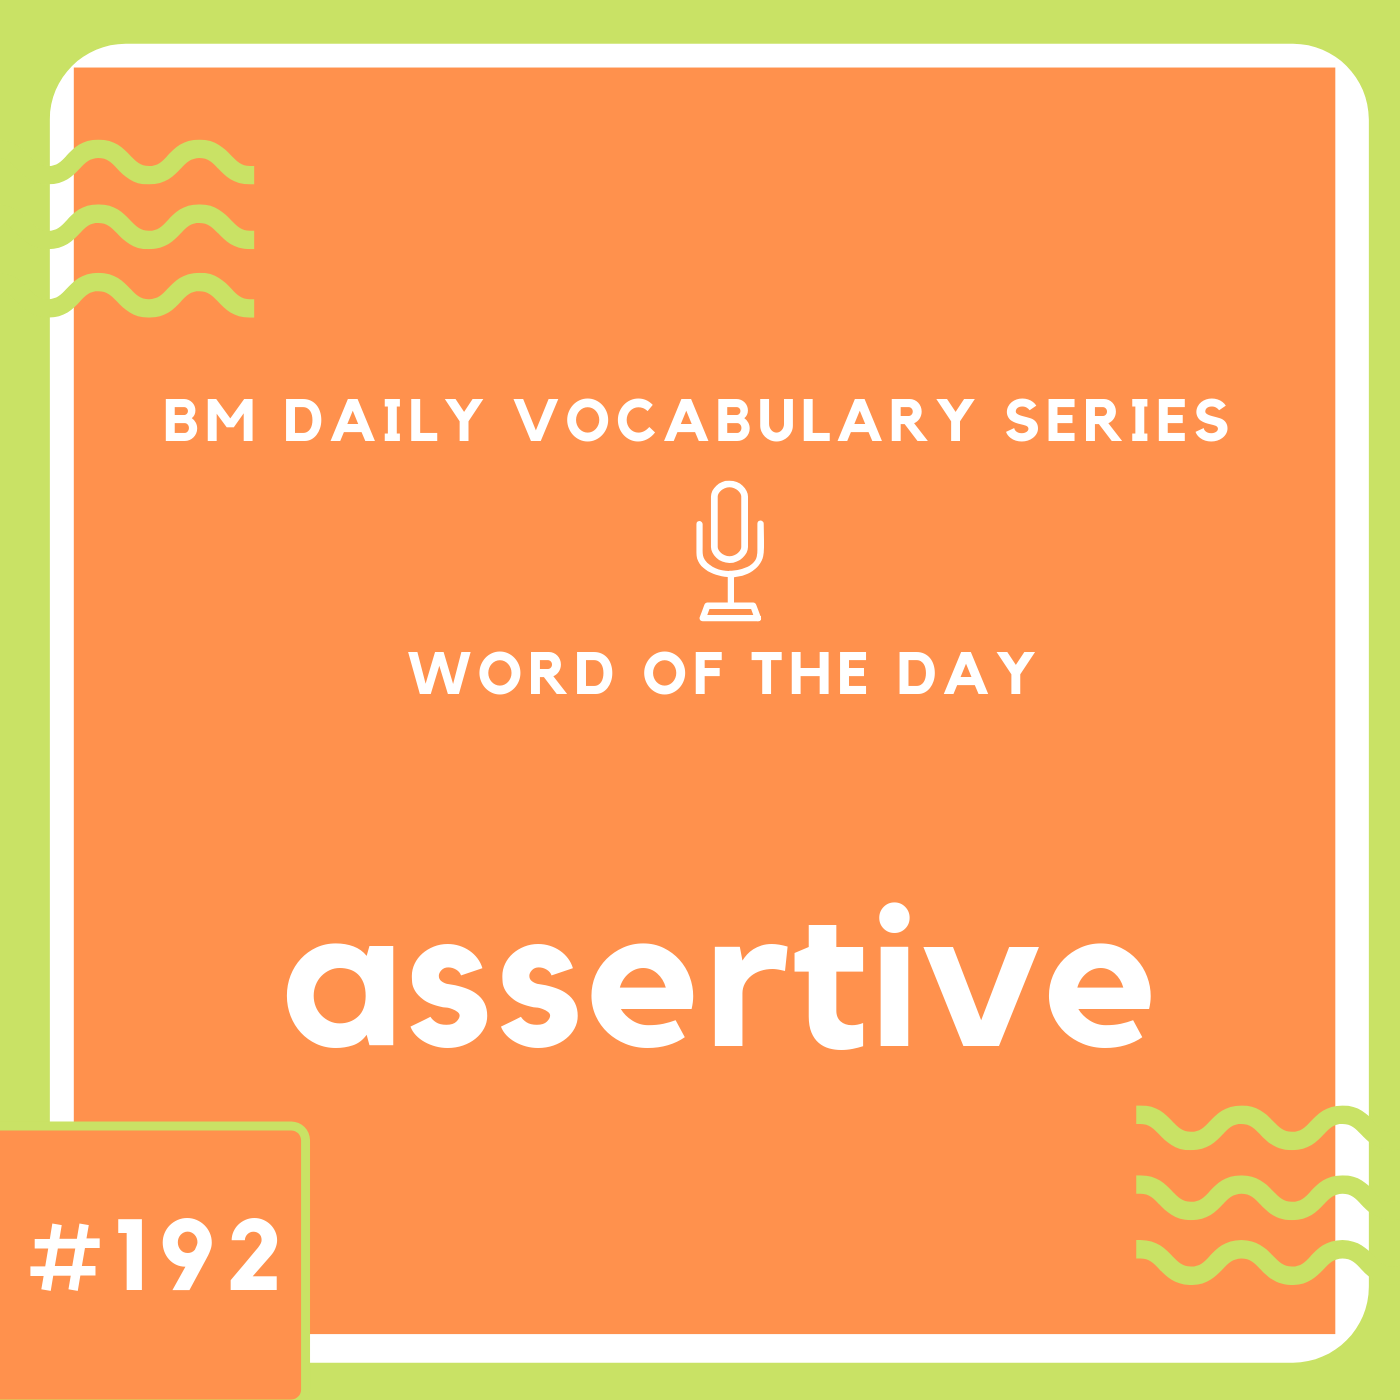 200 BM Daily Vocabulary #192 | assertive